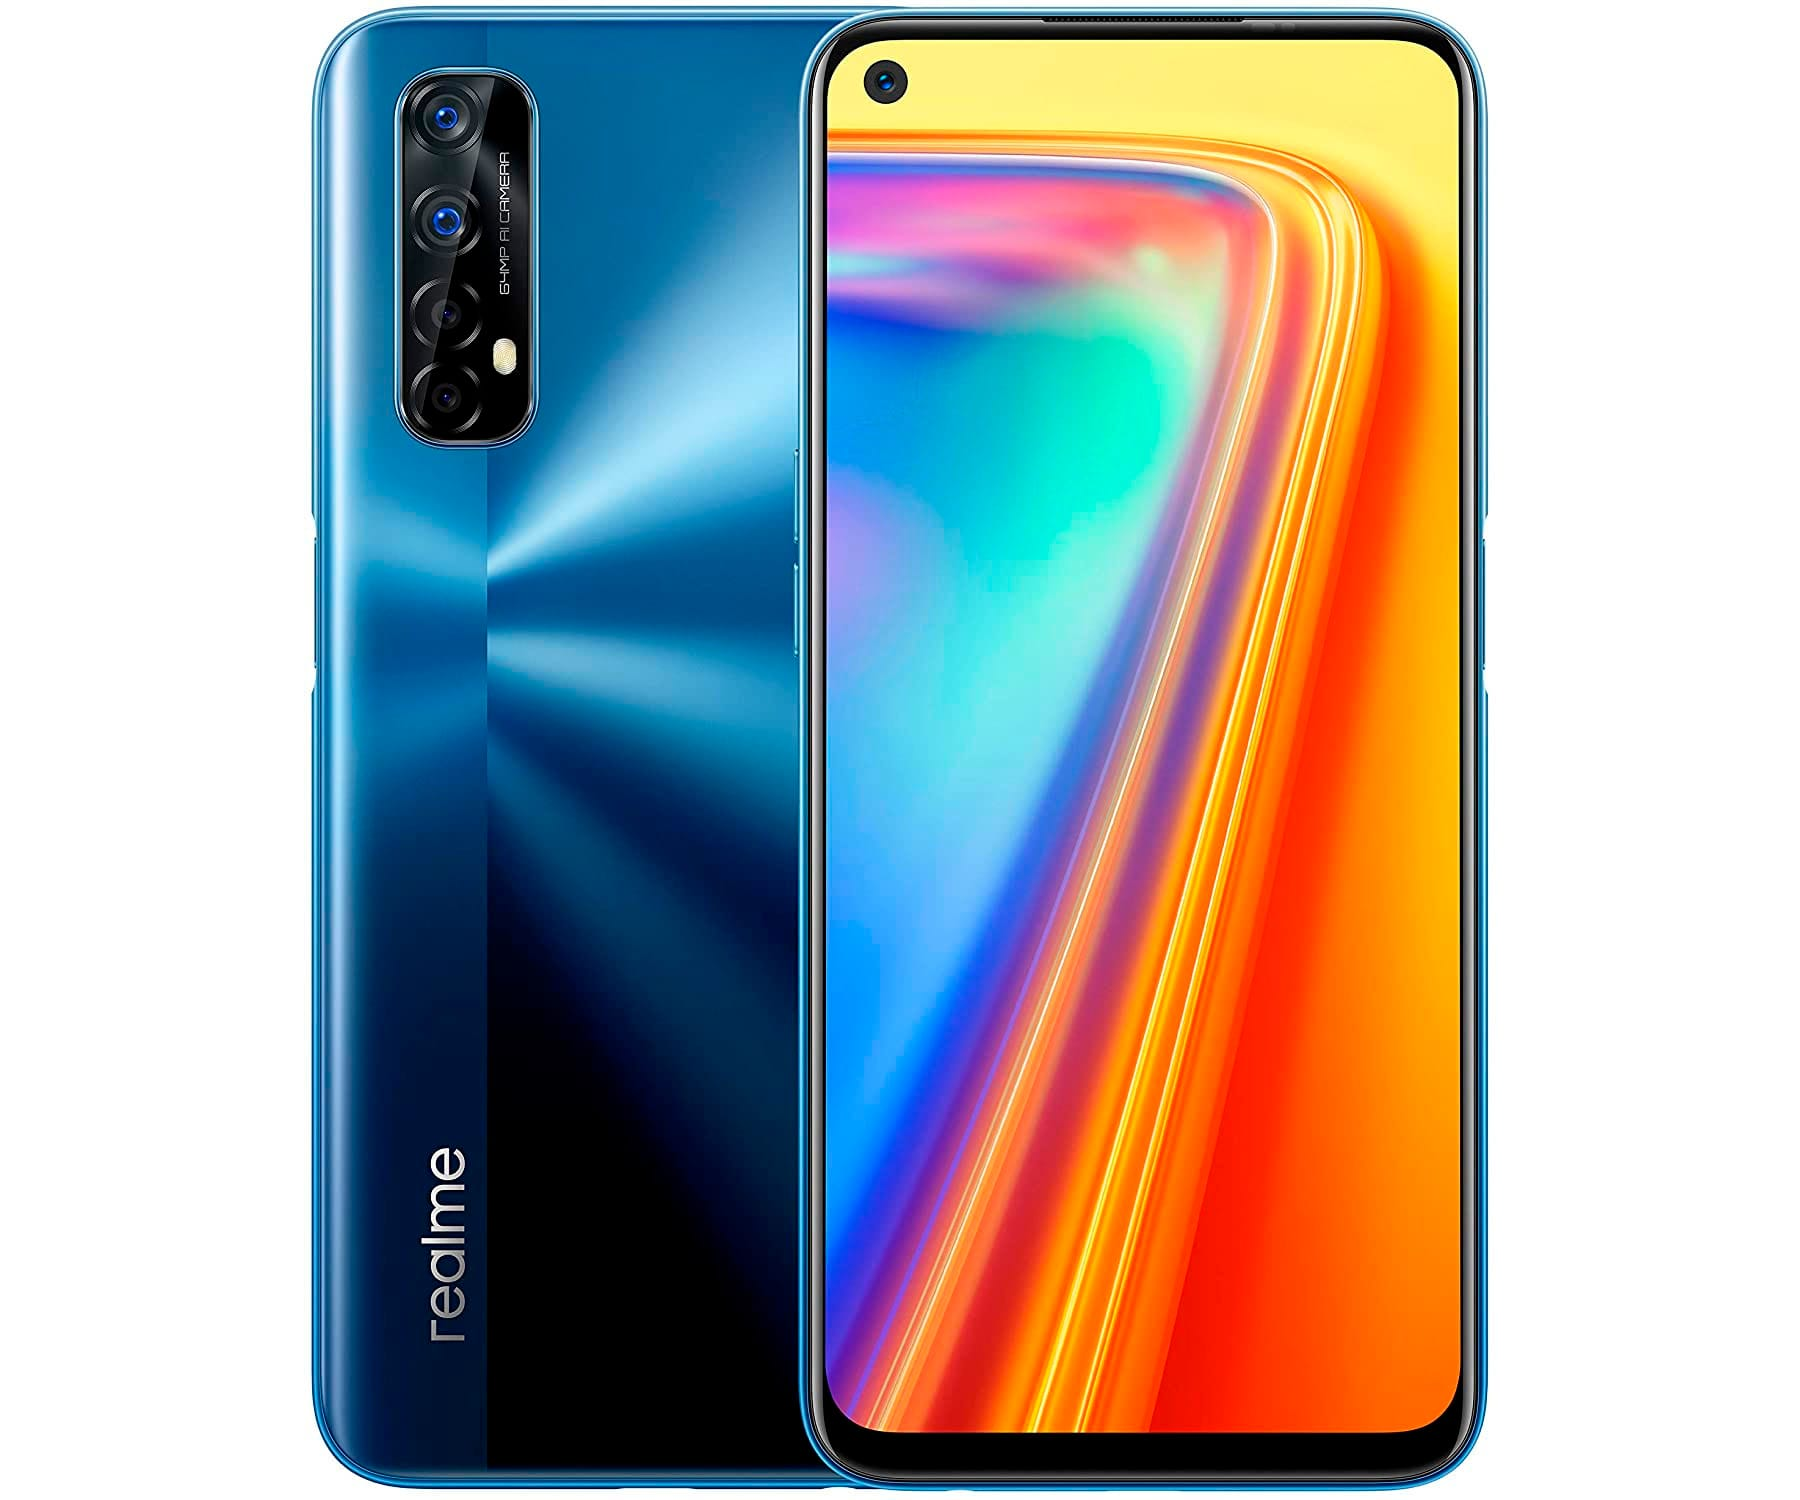 REALME 7 AZUL MÓVIL 4G DUAL SIM 6.5'' 90Hz FullHD+ OCTACORE 64GB 6GB RAM QUADCAM 48MP SELFIES 16MP